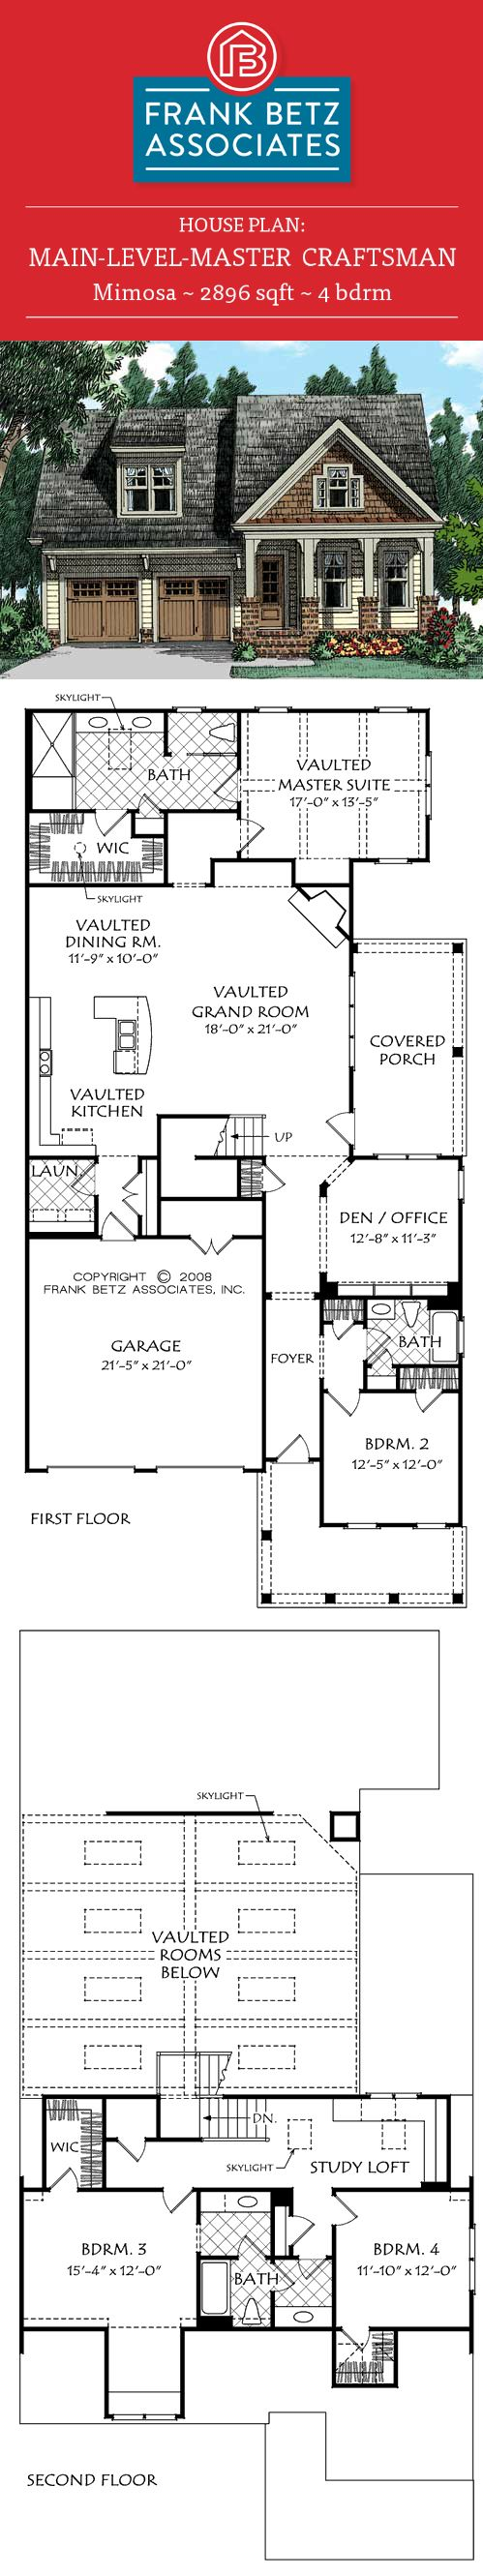 Betz house plans with large kitchen frank house plans designs ideas - Mimosa House Plan The Combination Vaulted Kitchen Dining And Living Rooms Form A Great Room In The Truest Sense Of The Word